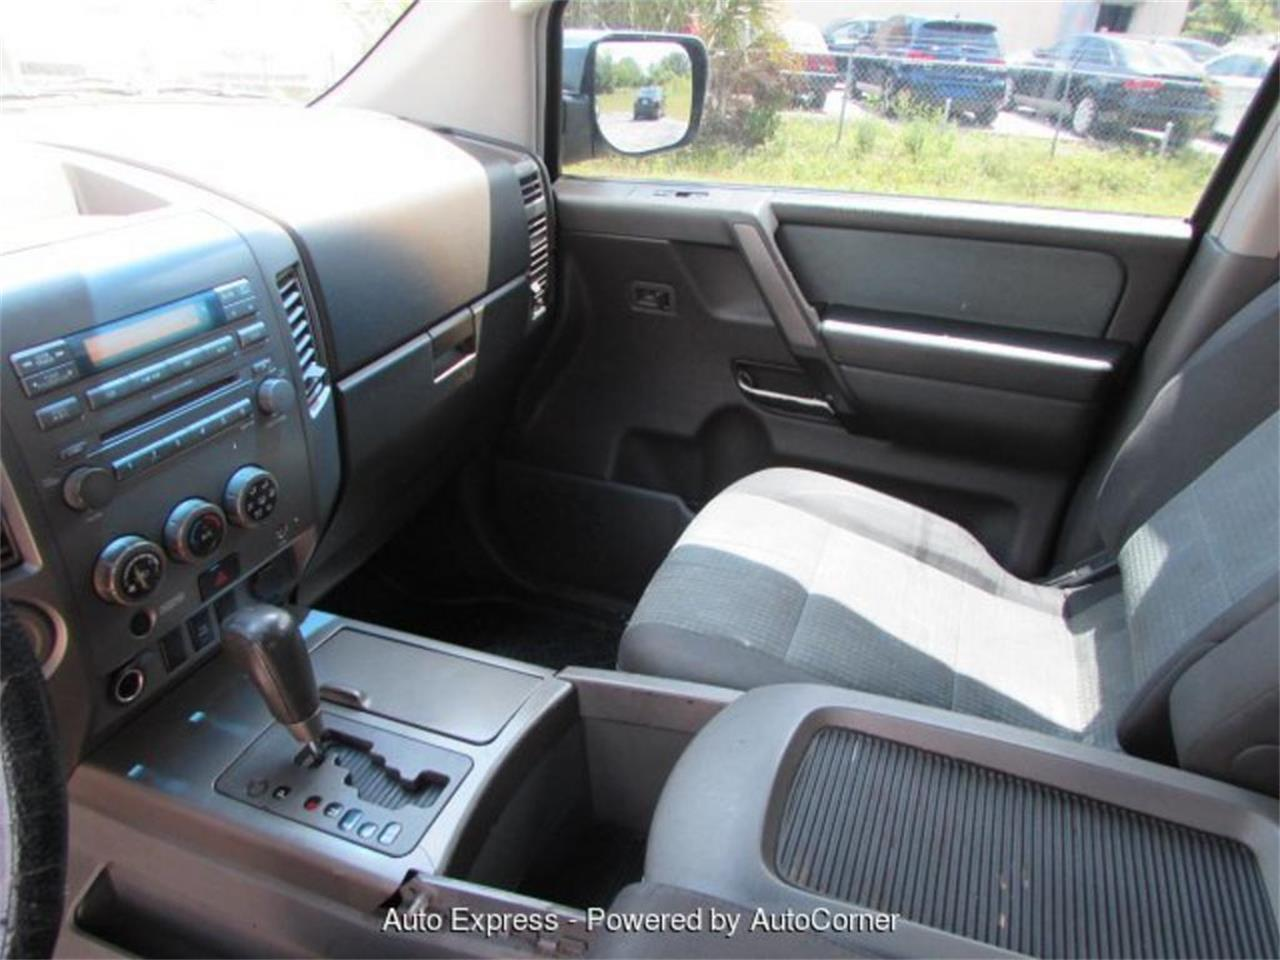 Large Picture of '06 Nissan Titan located in Florida - $6,999.00 Offered by Auto Express - Q2AL